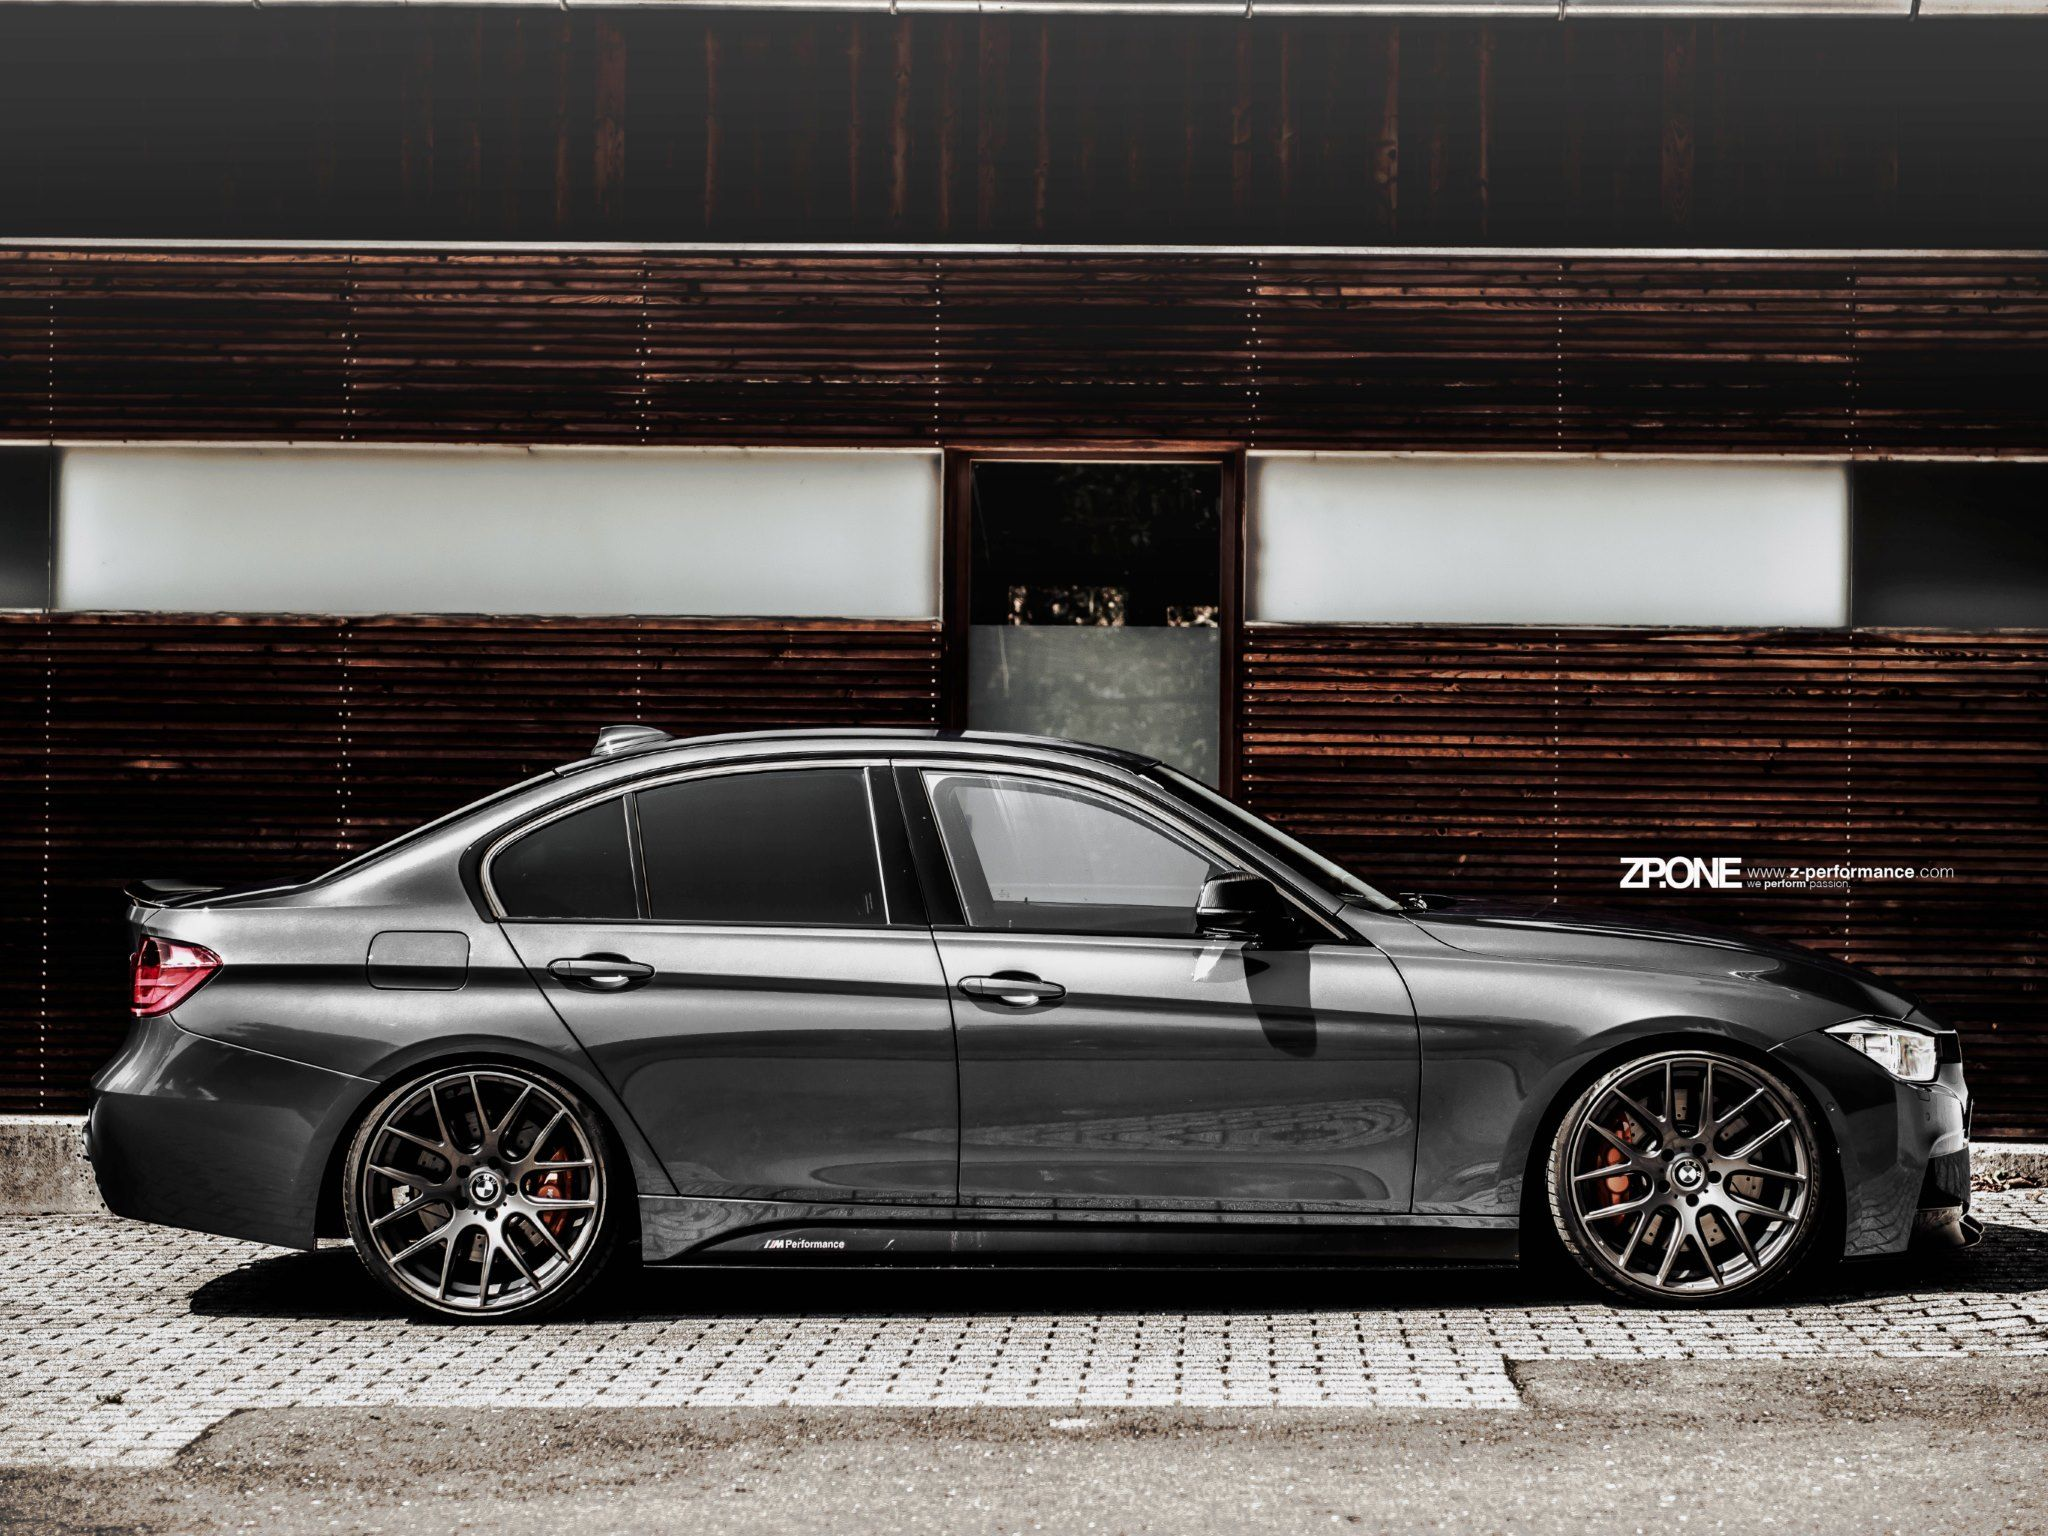 Bmw F30 With Personalized Wheels Wallpaper Photo